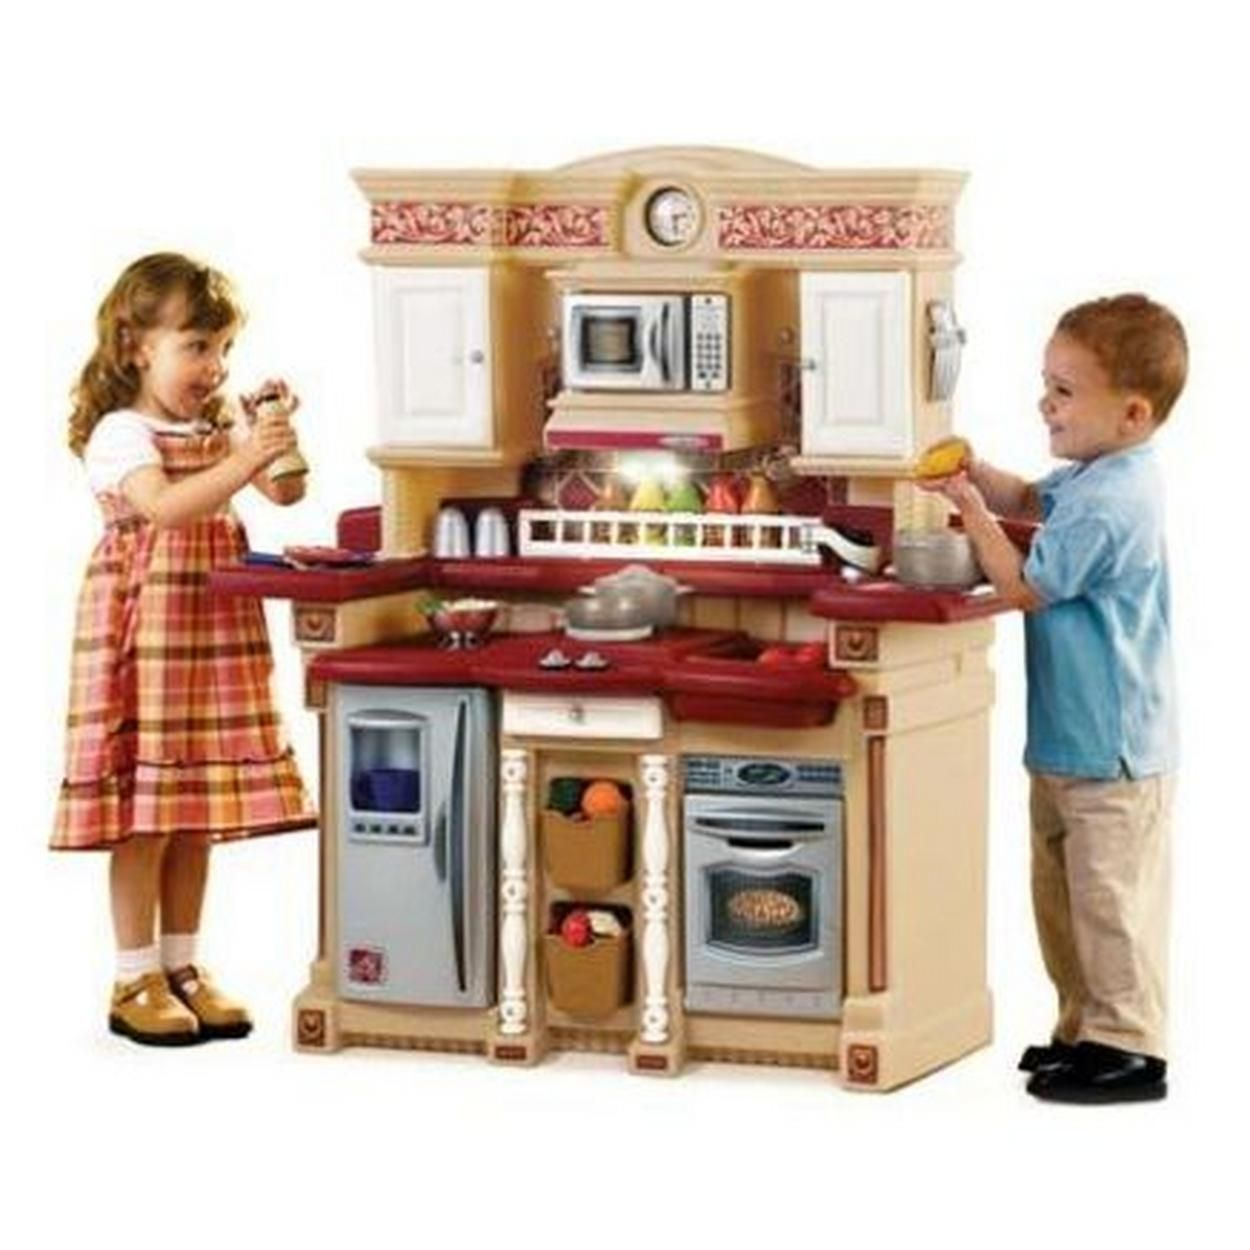 LifeStyle Partytime Kitchen Playset for 160.99 Play